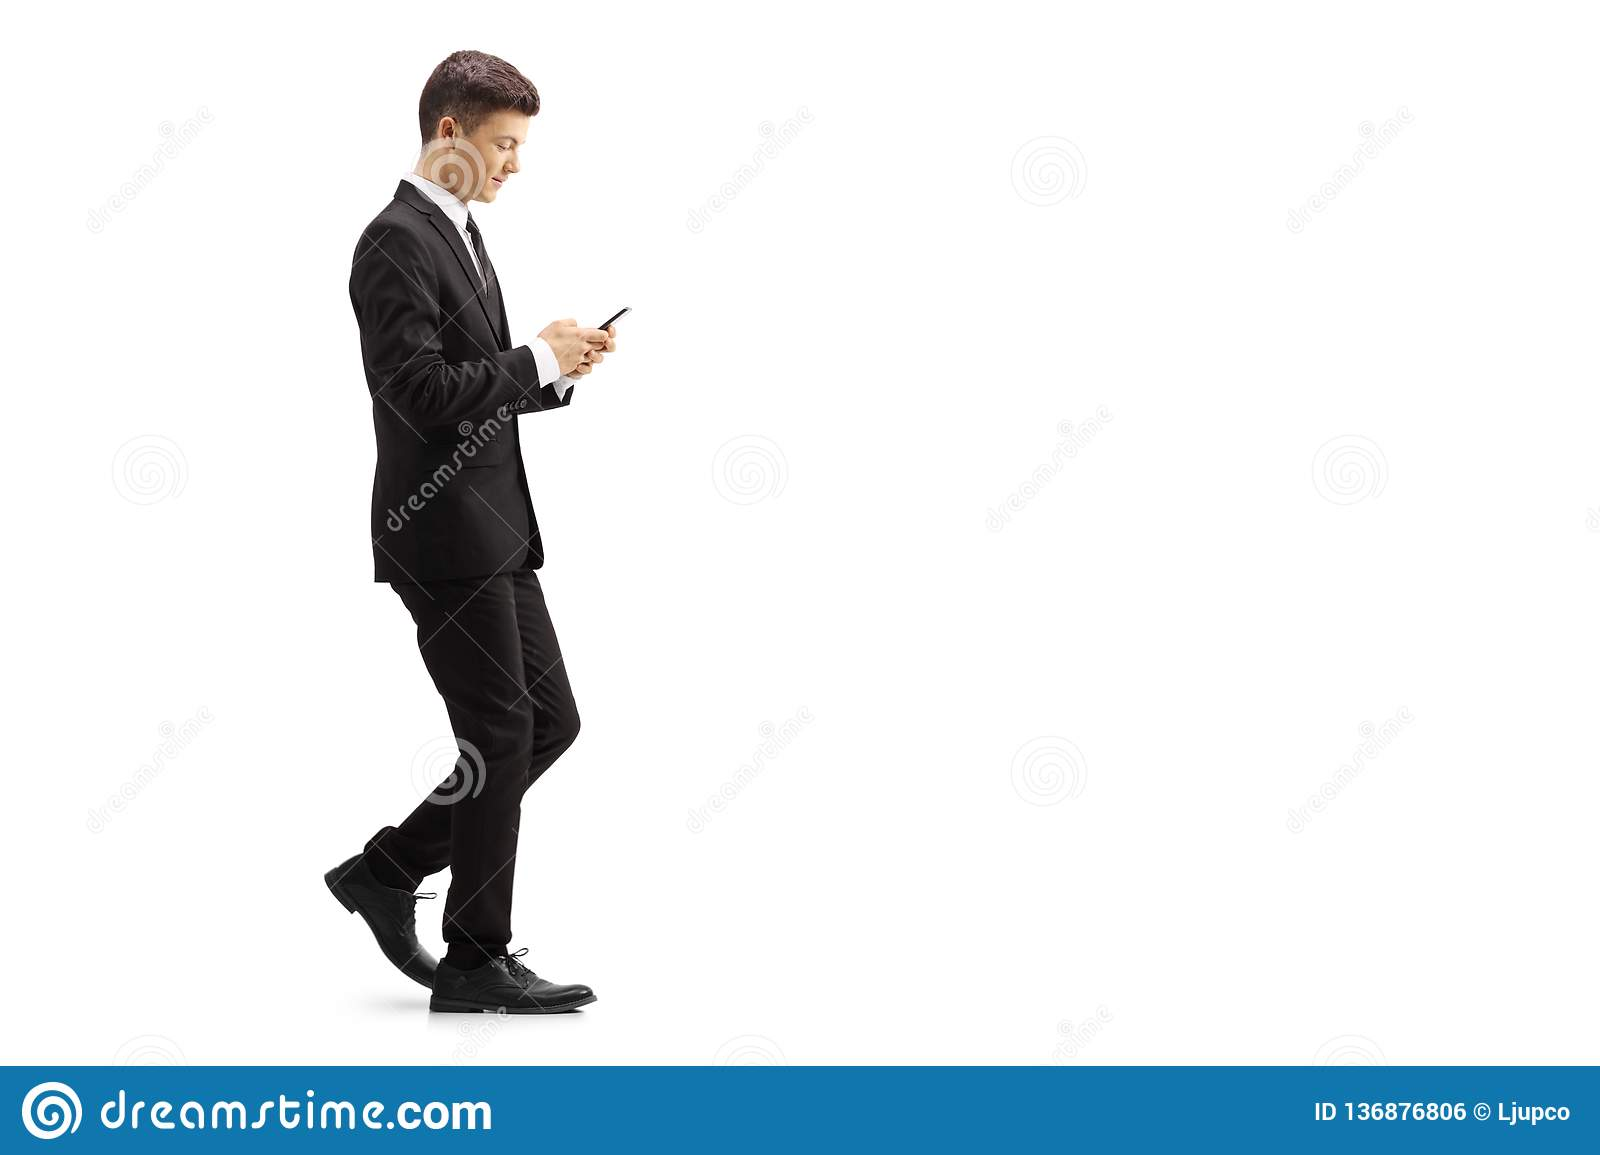 8618c014f7 Full length profile shot of a young man in a black suit walking and typing  onto a mobile phone isolated on white background